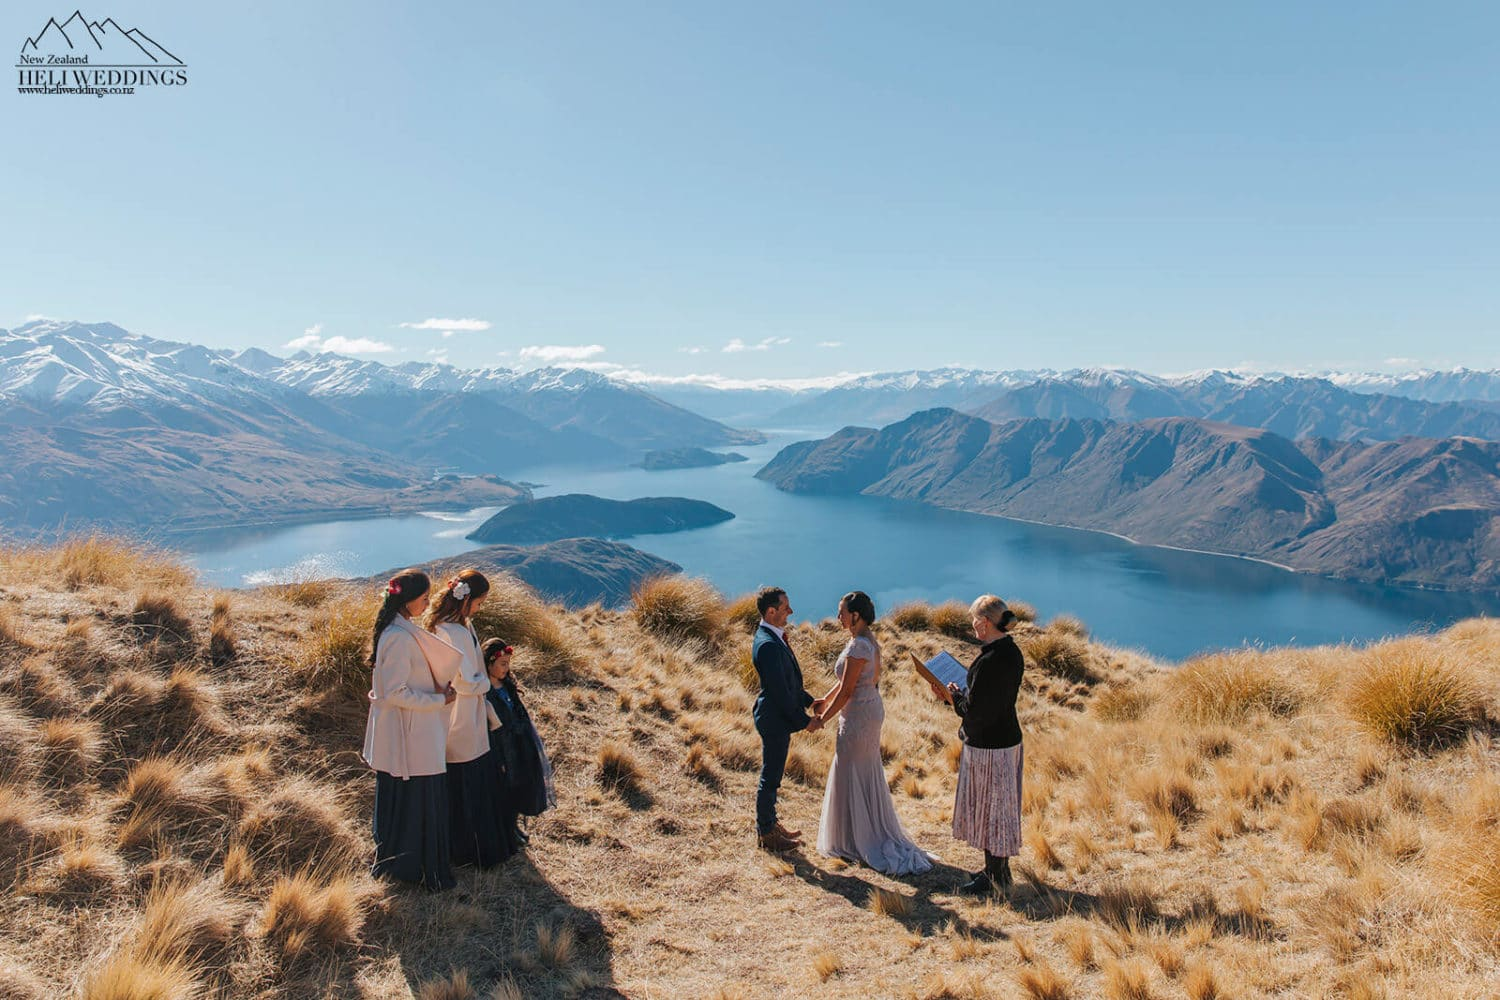 Wanaka Wedding ceremony on Coromandel Peak